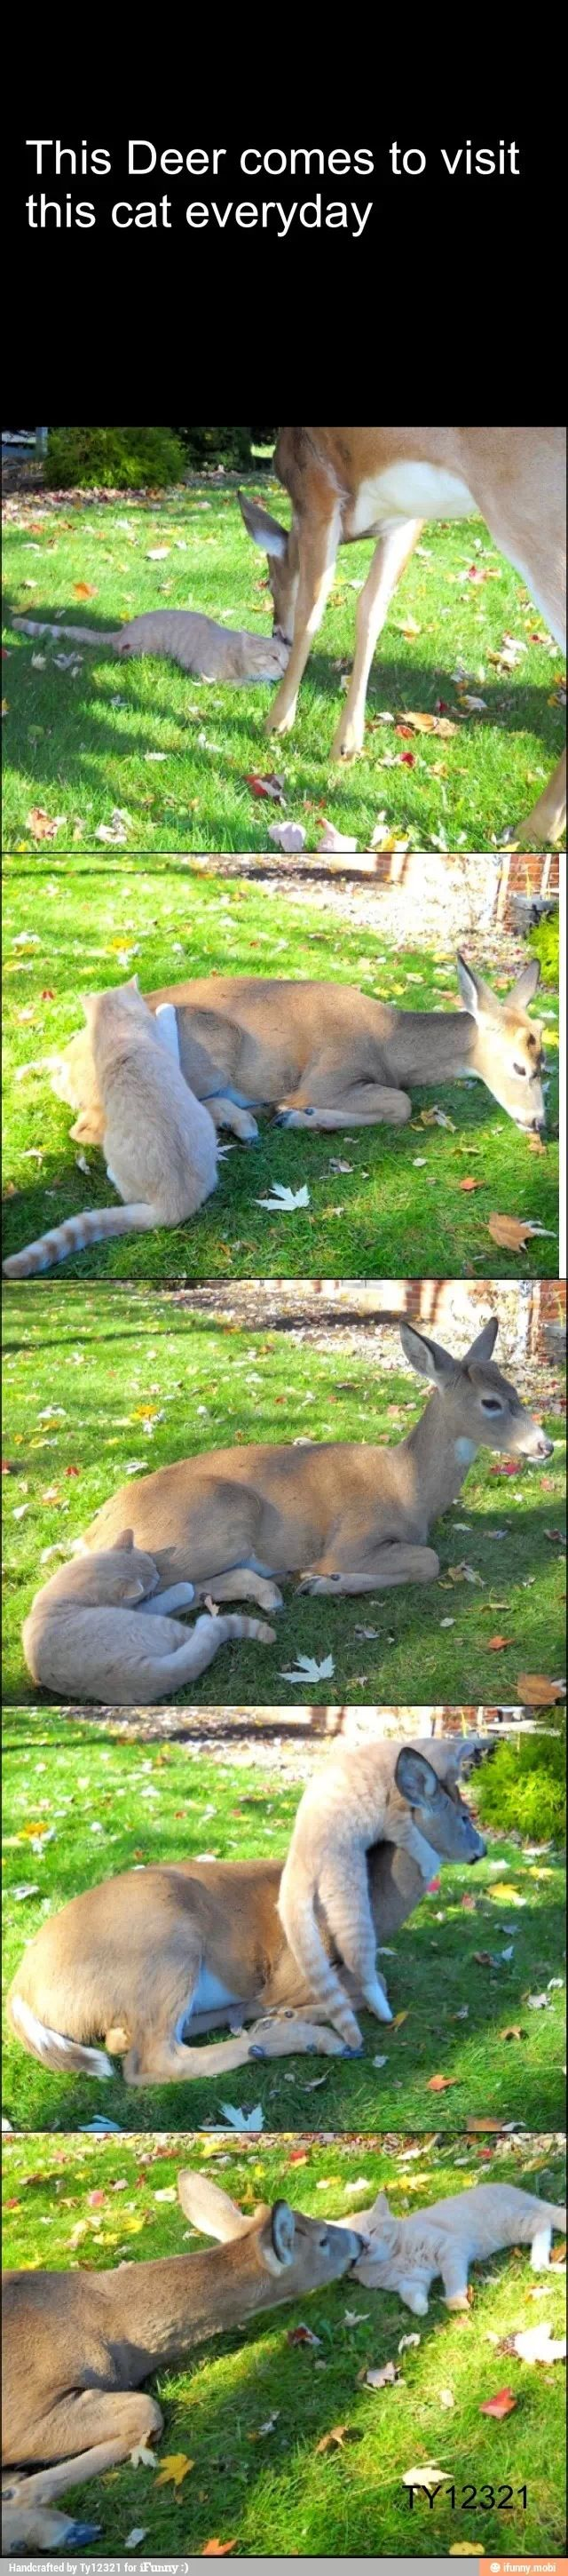 Deer and a cat :) - deer can be so sweet - second deer was about someone I loved